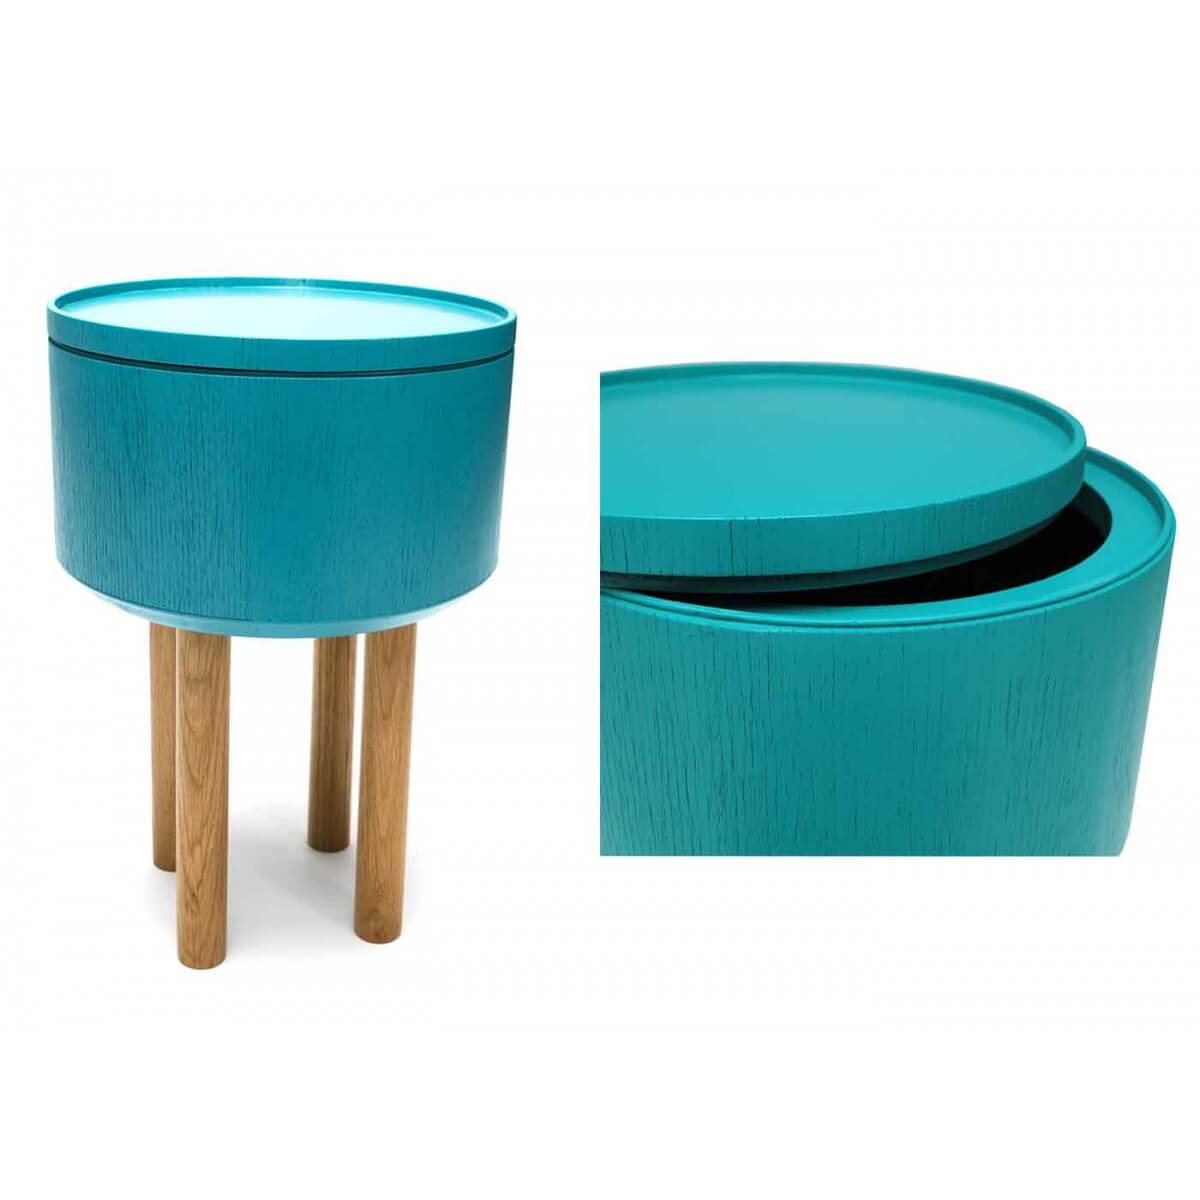 Table basse design scandinave bleu glacier hat 3 par bellila - Table basse bleu ...